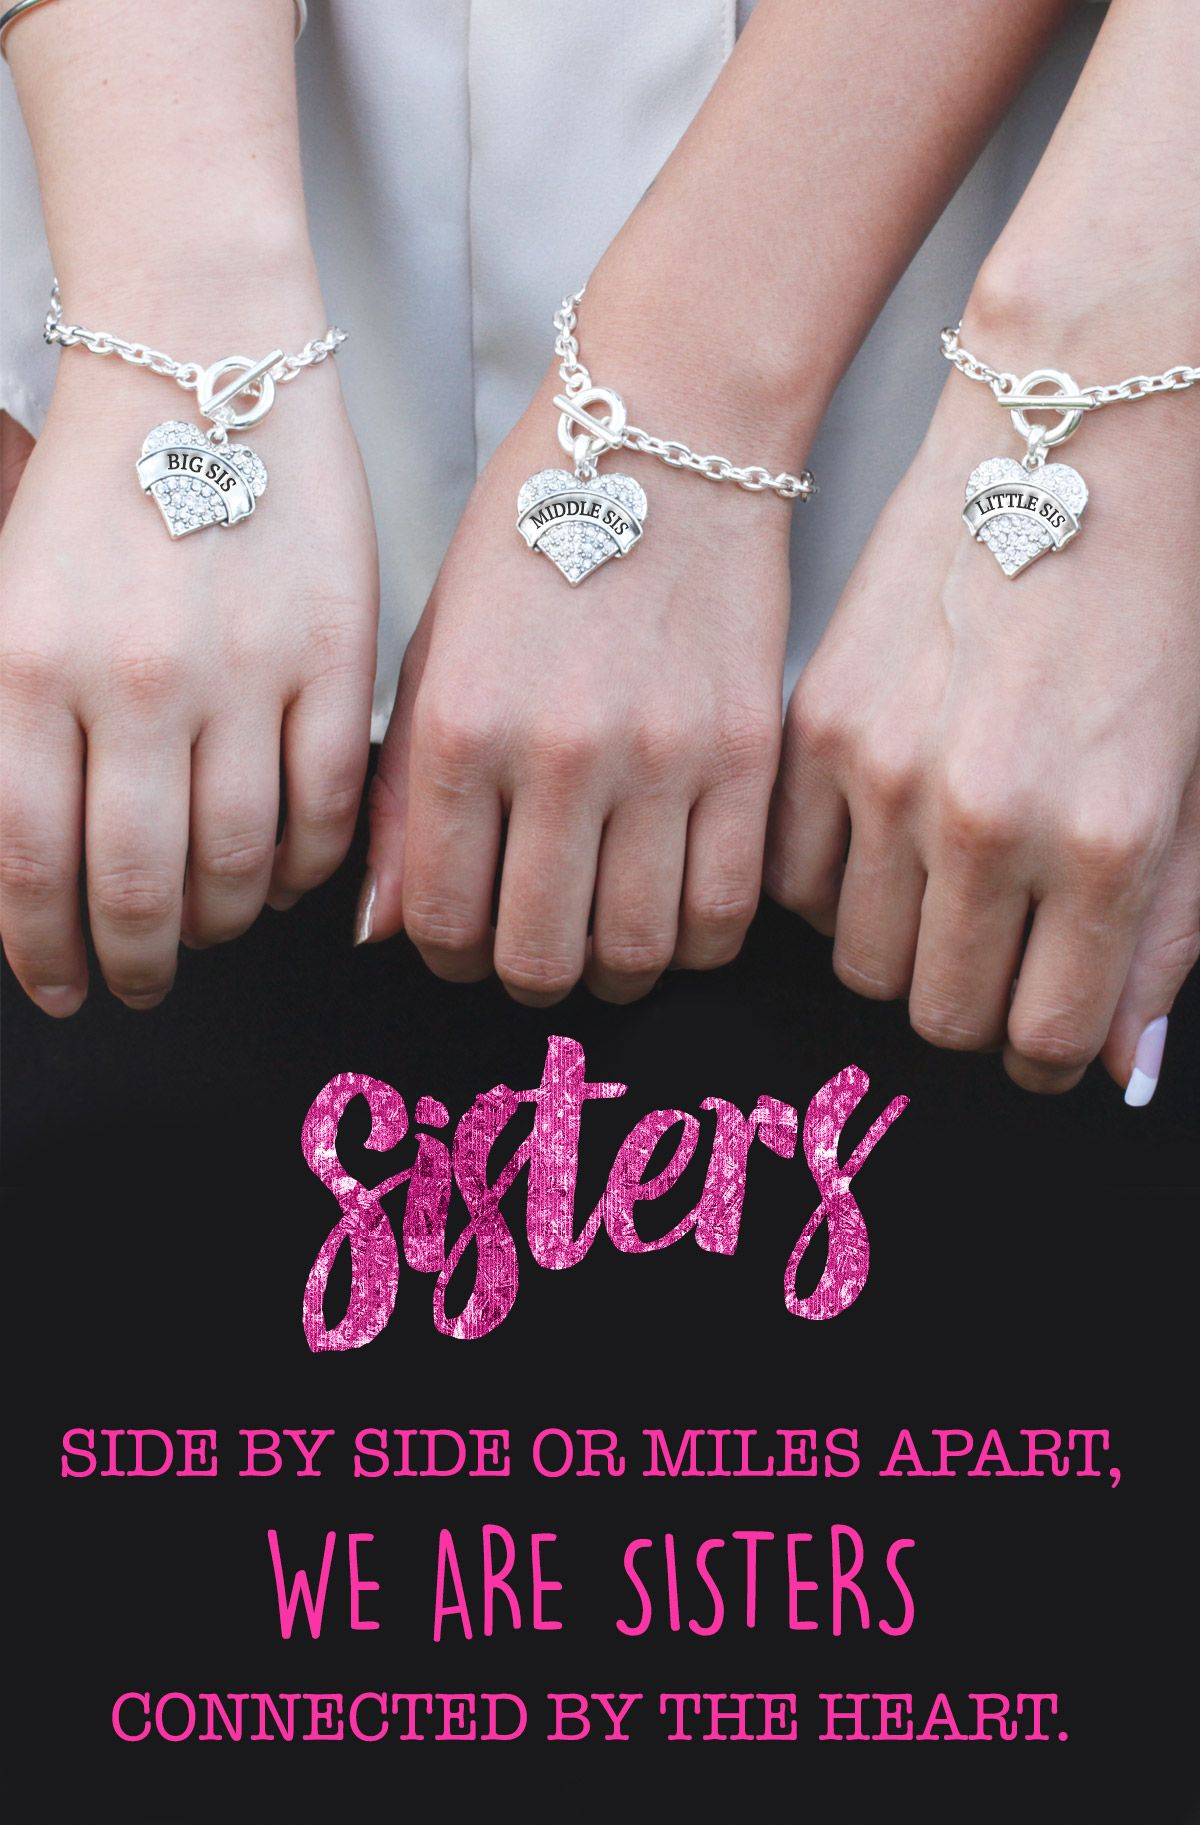 Do you love you sisters Sisters share an unspoken bond throughout life inspiredsilver